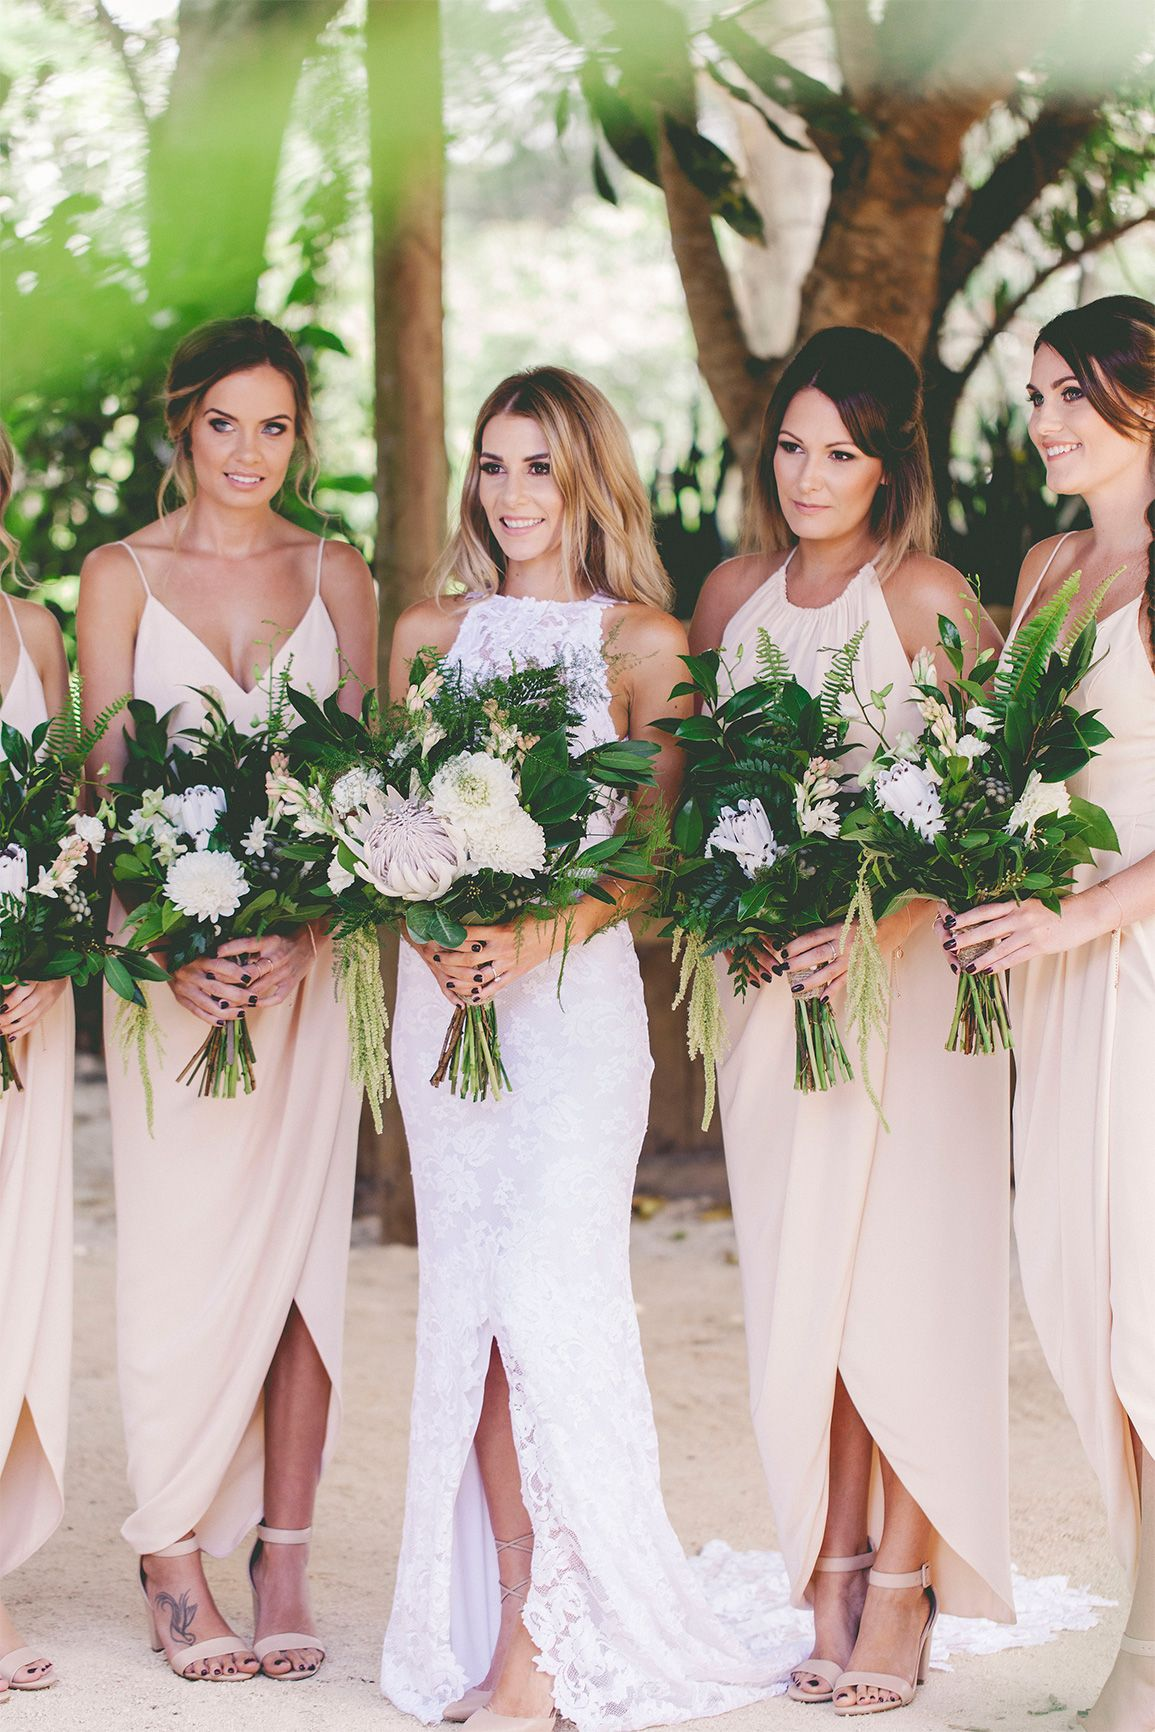 Cody cassie in the alexandra cassie wedding and weddings cody cassie in the alexandra neutral bridesmaid dressesdestination ombrellifo Image collections